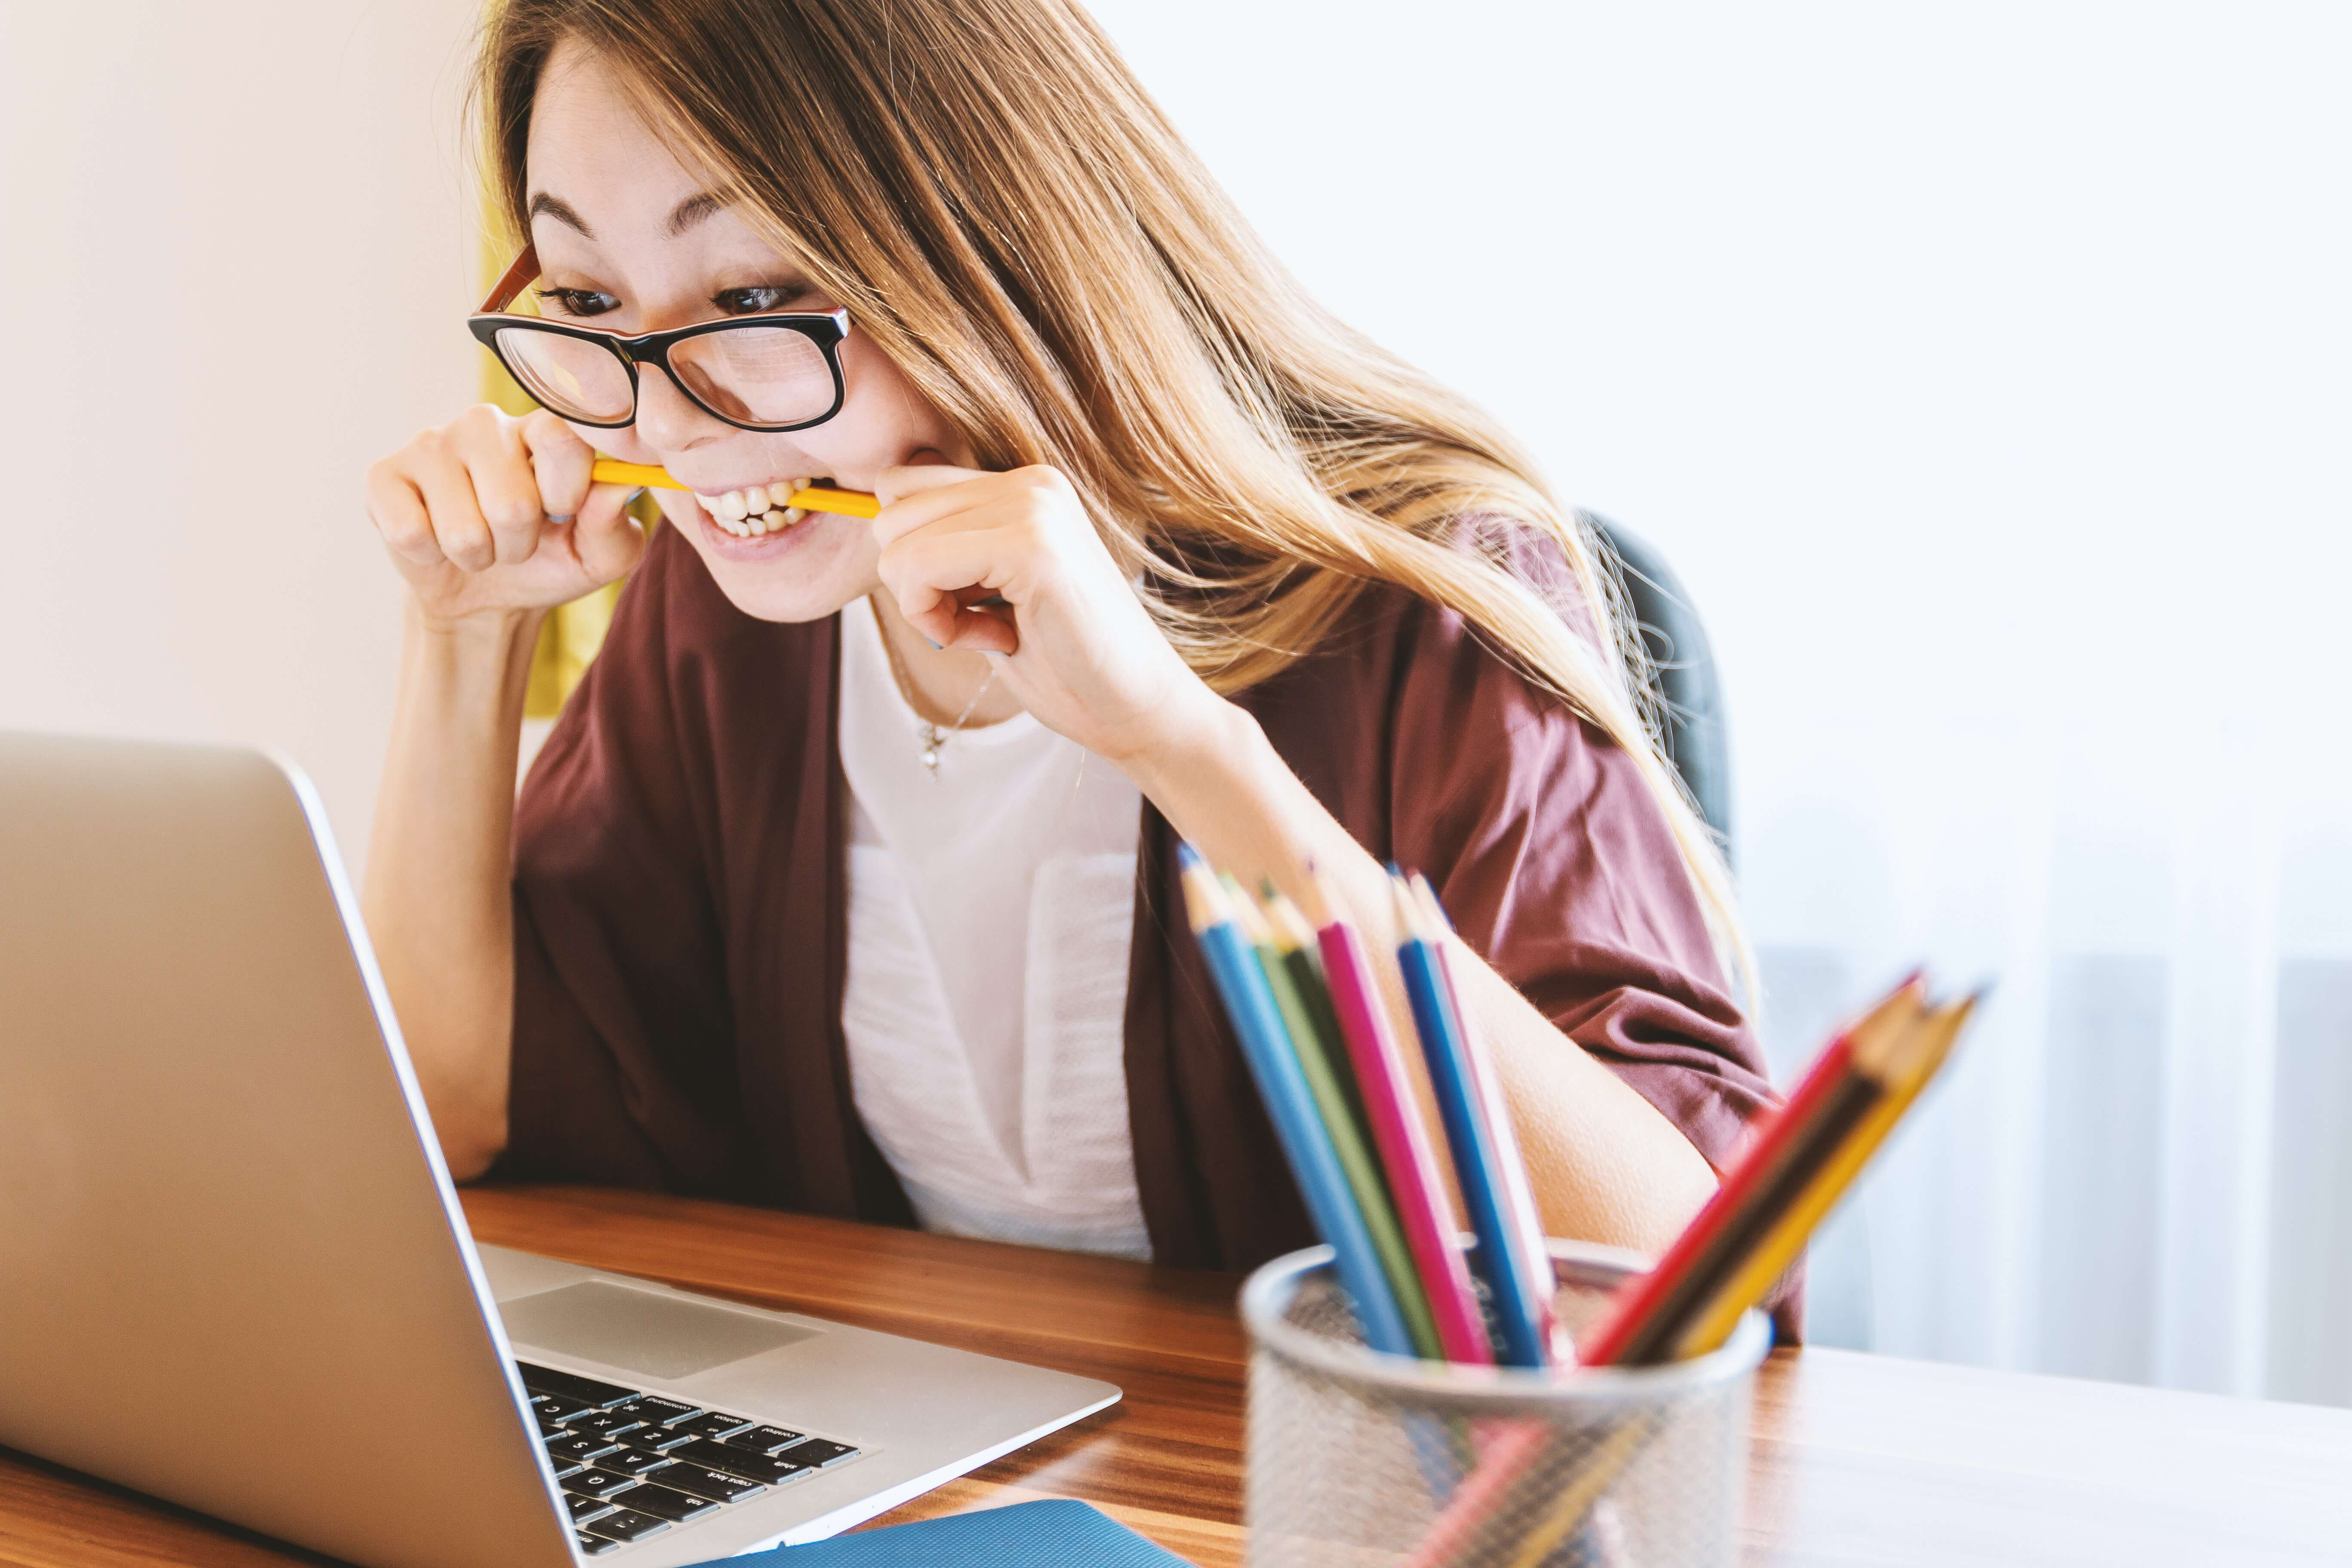 girl with glasses in front of computer chewing on pencil